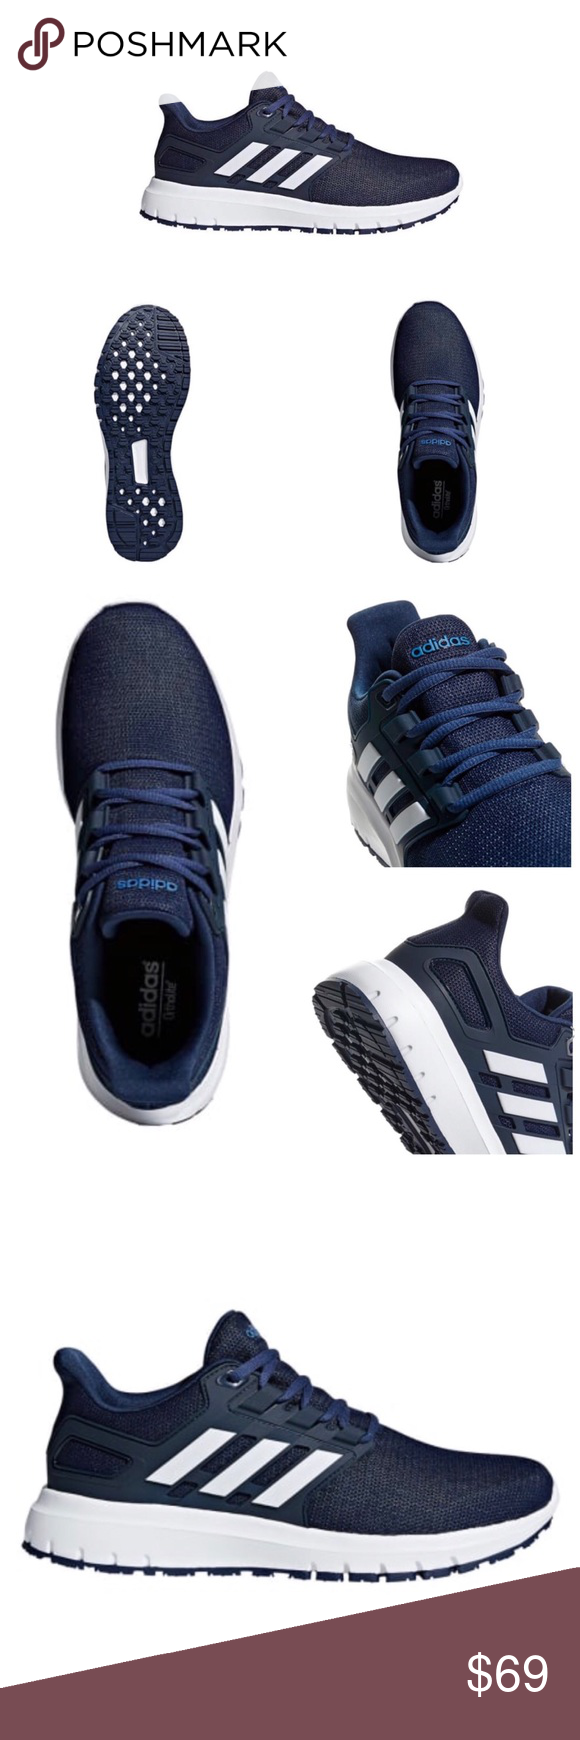 Adidas Energy Cloud 2 Wide Width Nwt Shoes Sneakers Adidas Blue Adidas Shoe Features